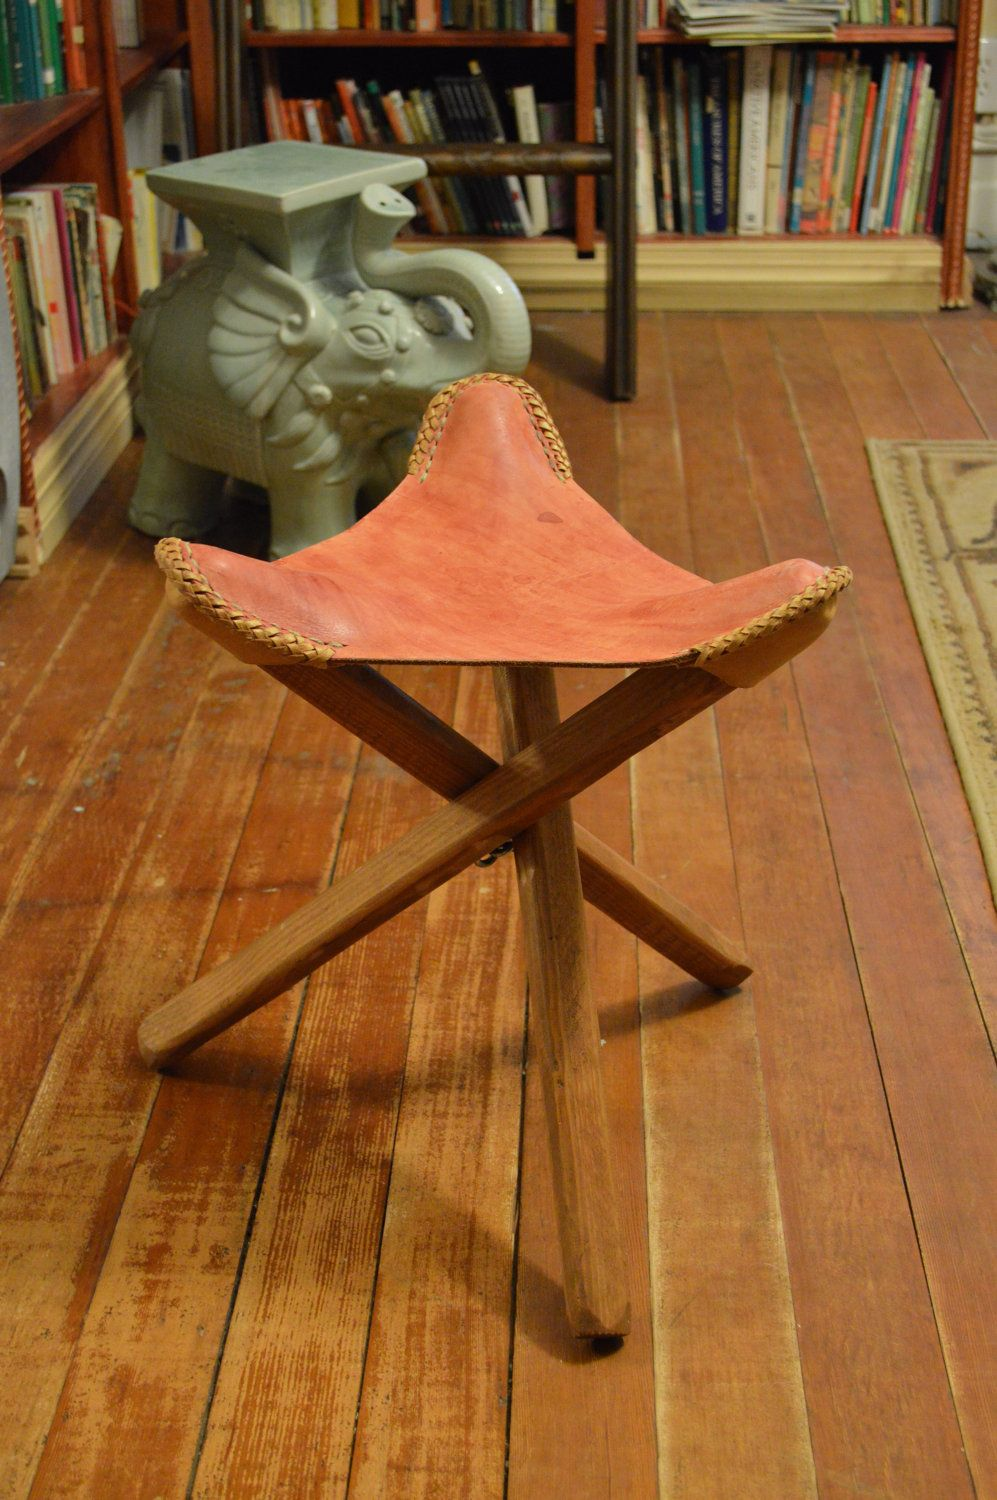 Antique Bed Stool: Vintage Mexican Three-Legged Leather Hunting Stools. $40